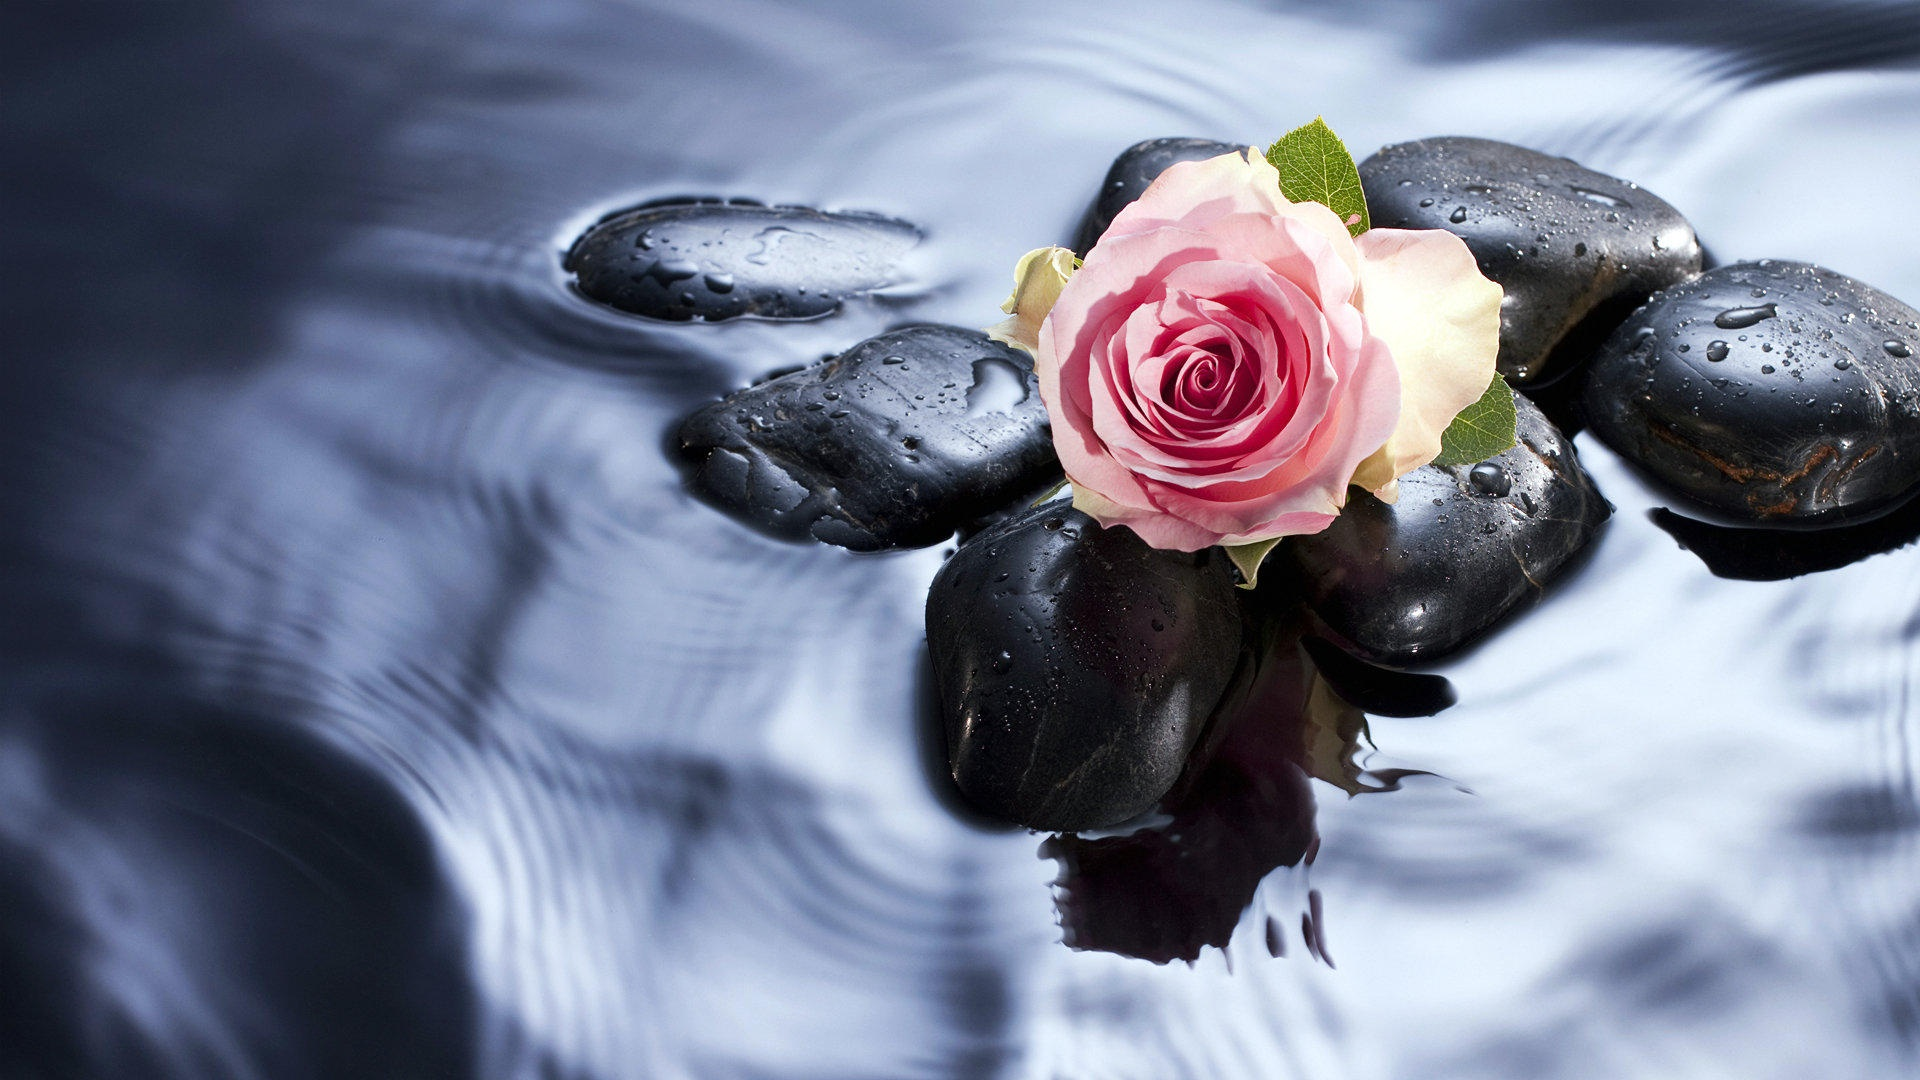 Roses in water wallpaper - 1920x1080